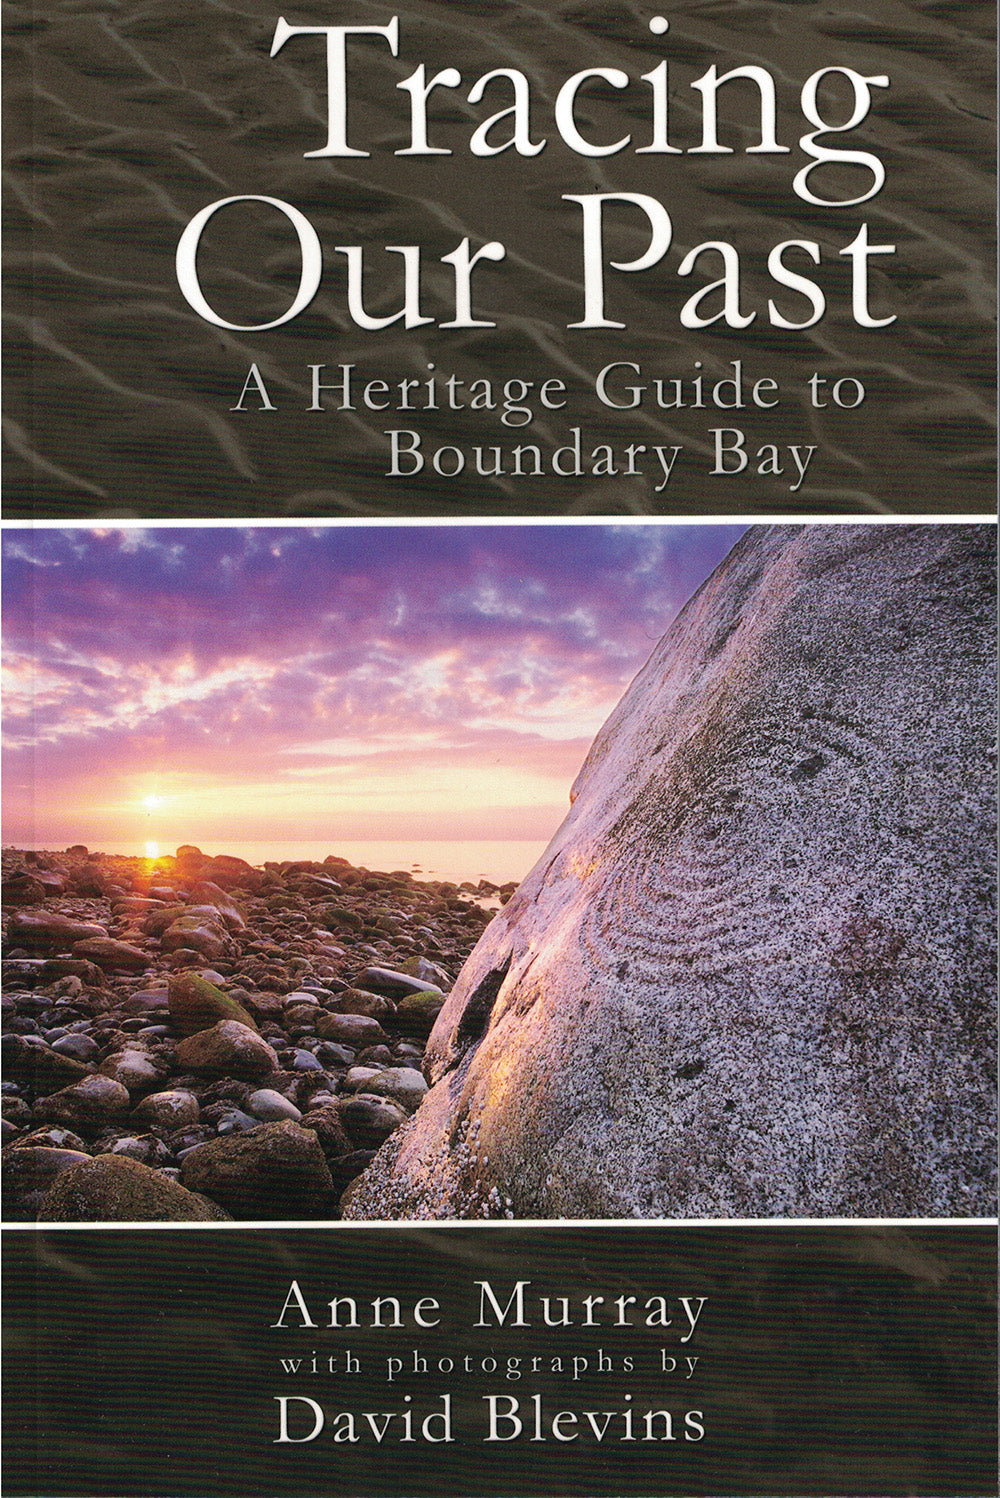 Tracing Our Past: a heritage guide to Boundary Bay